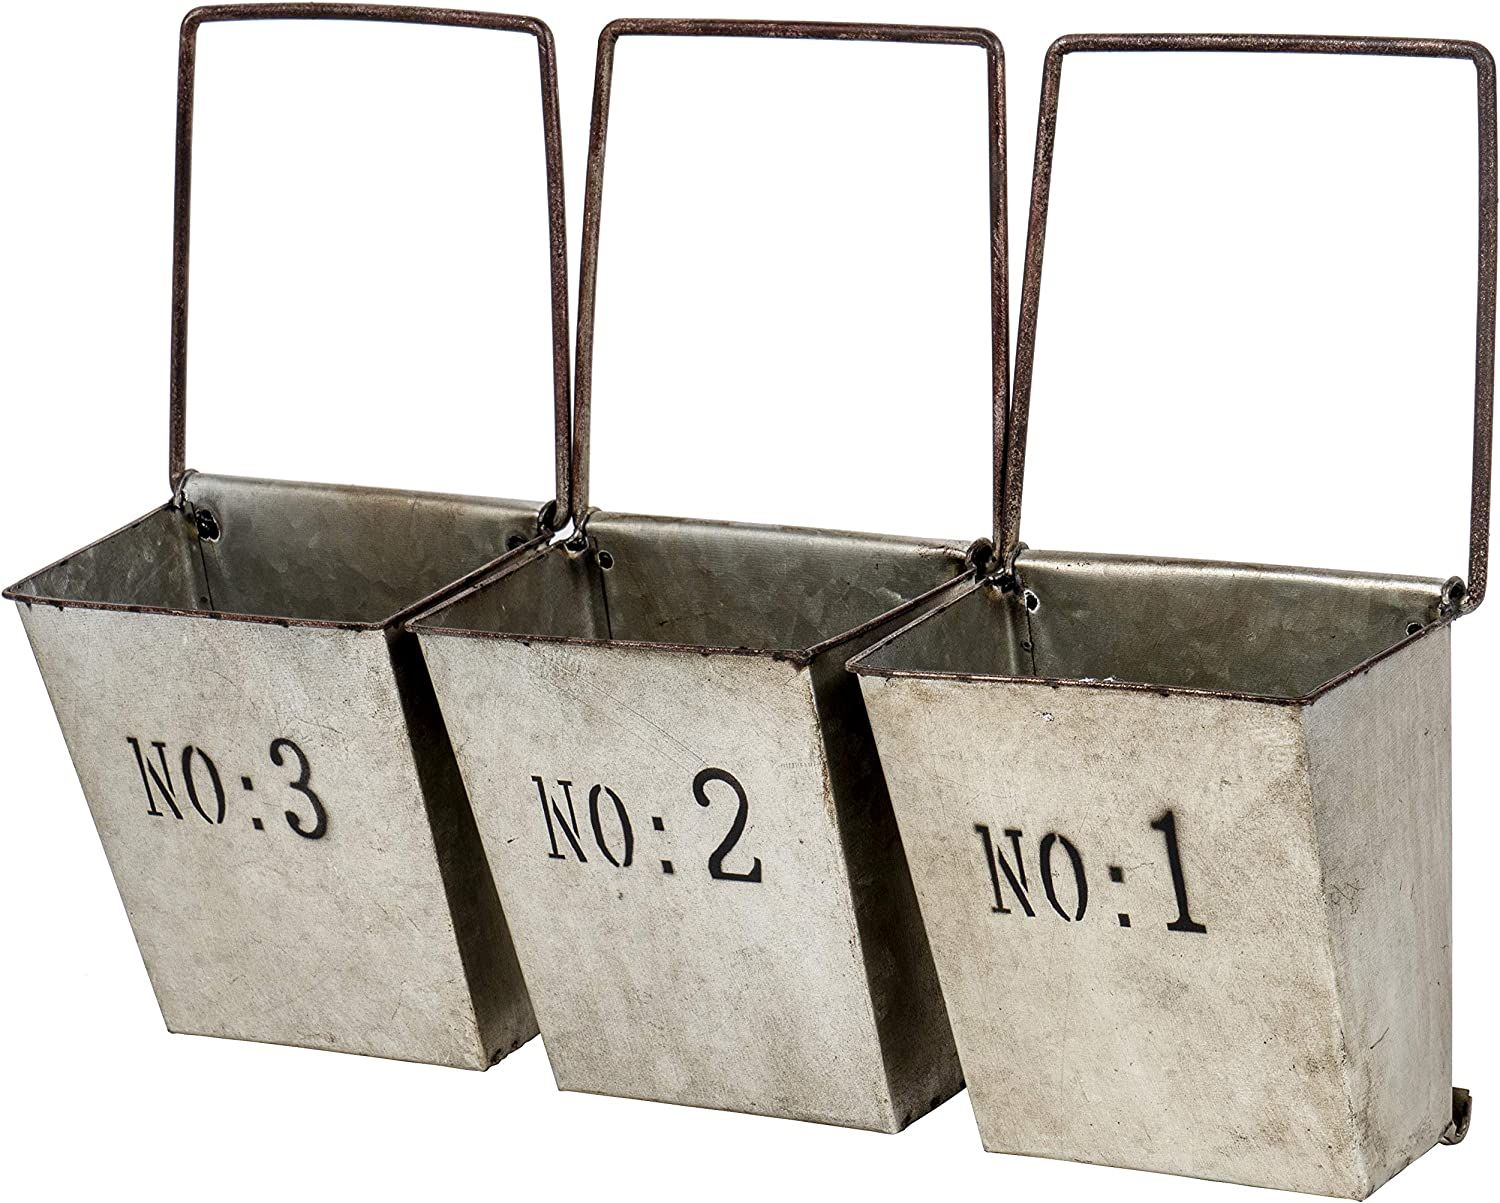 Red Co. Set of 3 Galvanized Hanging Buckets, Wall Pocket Planters, Country Rustic Farmhouse Décor